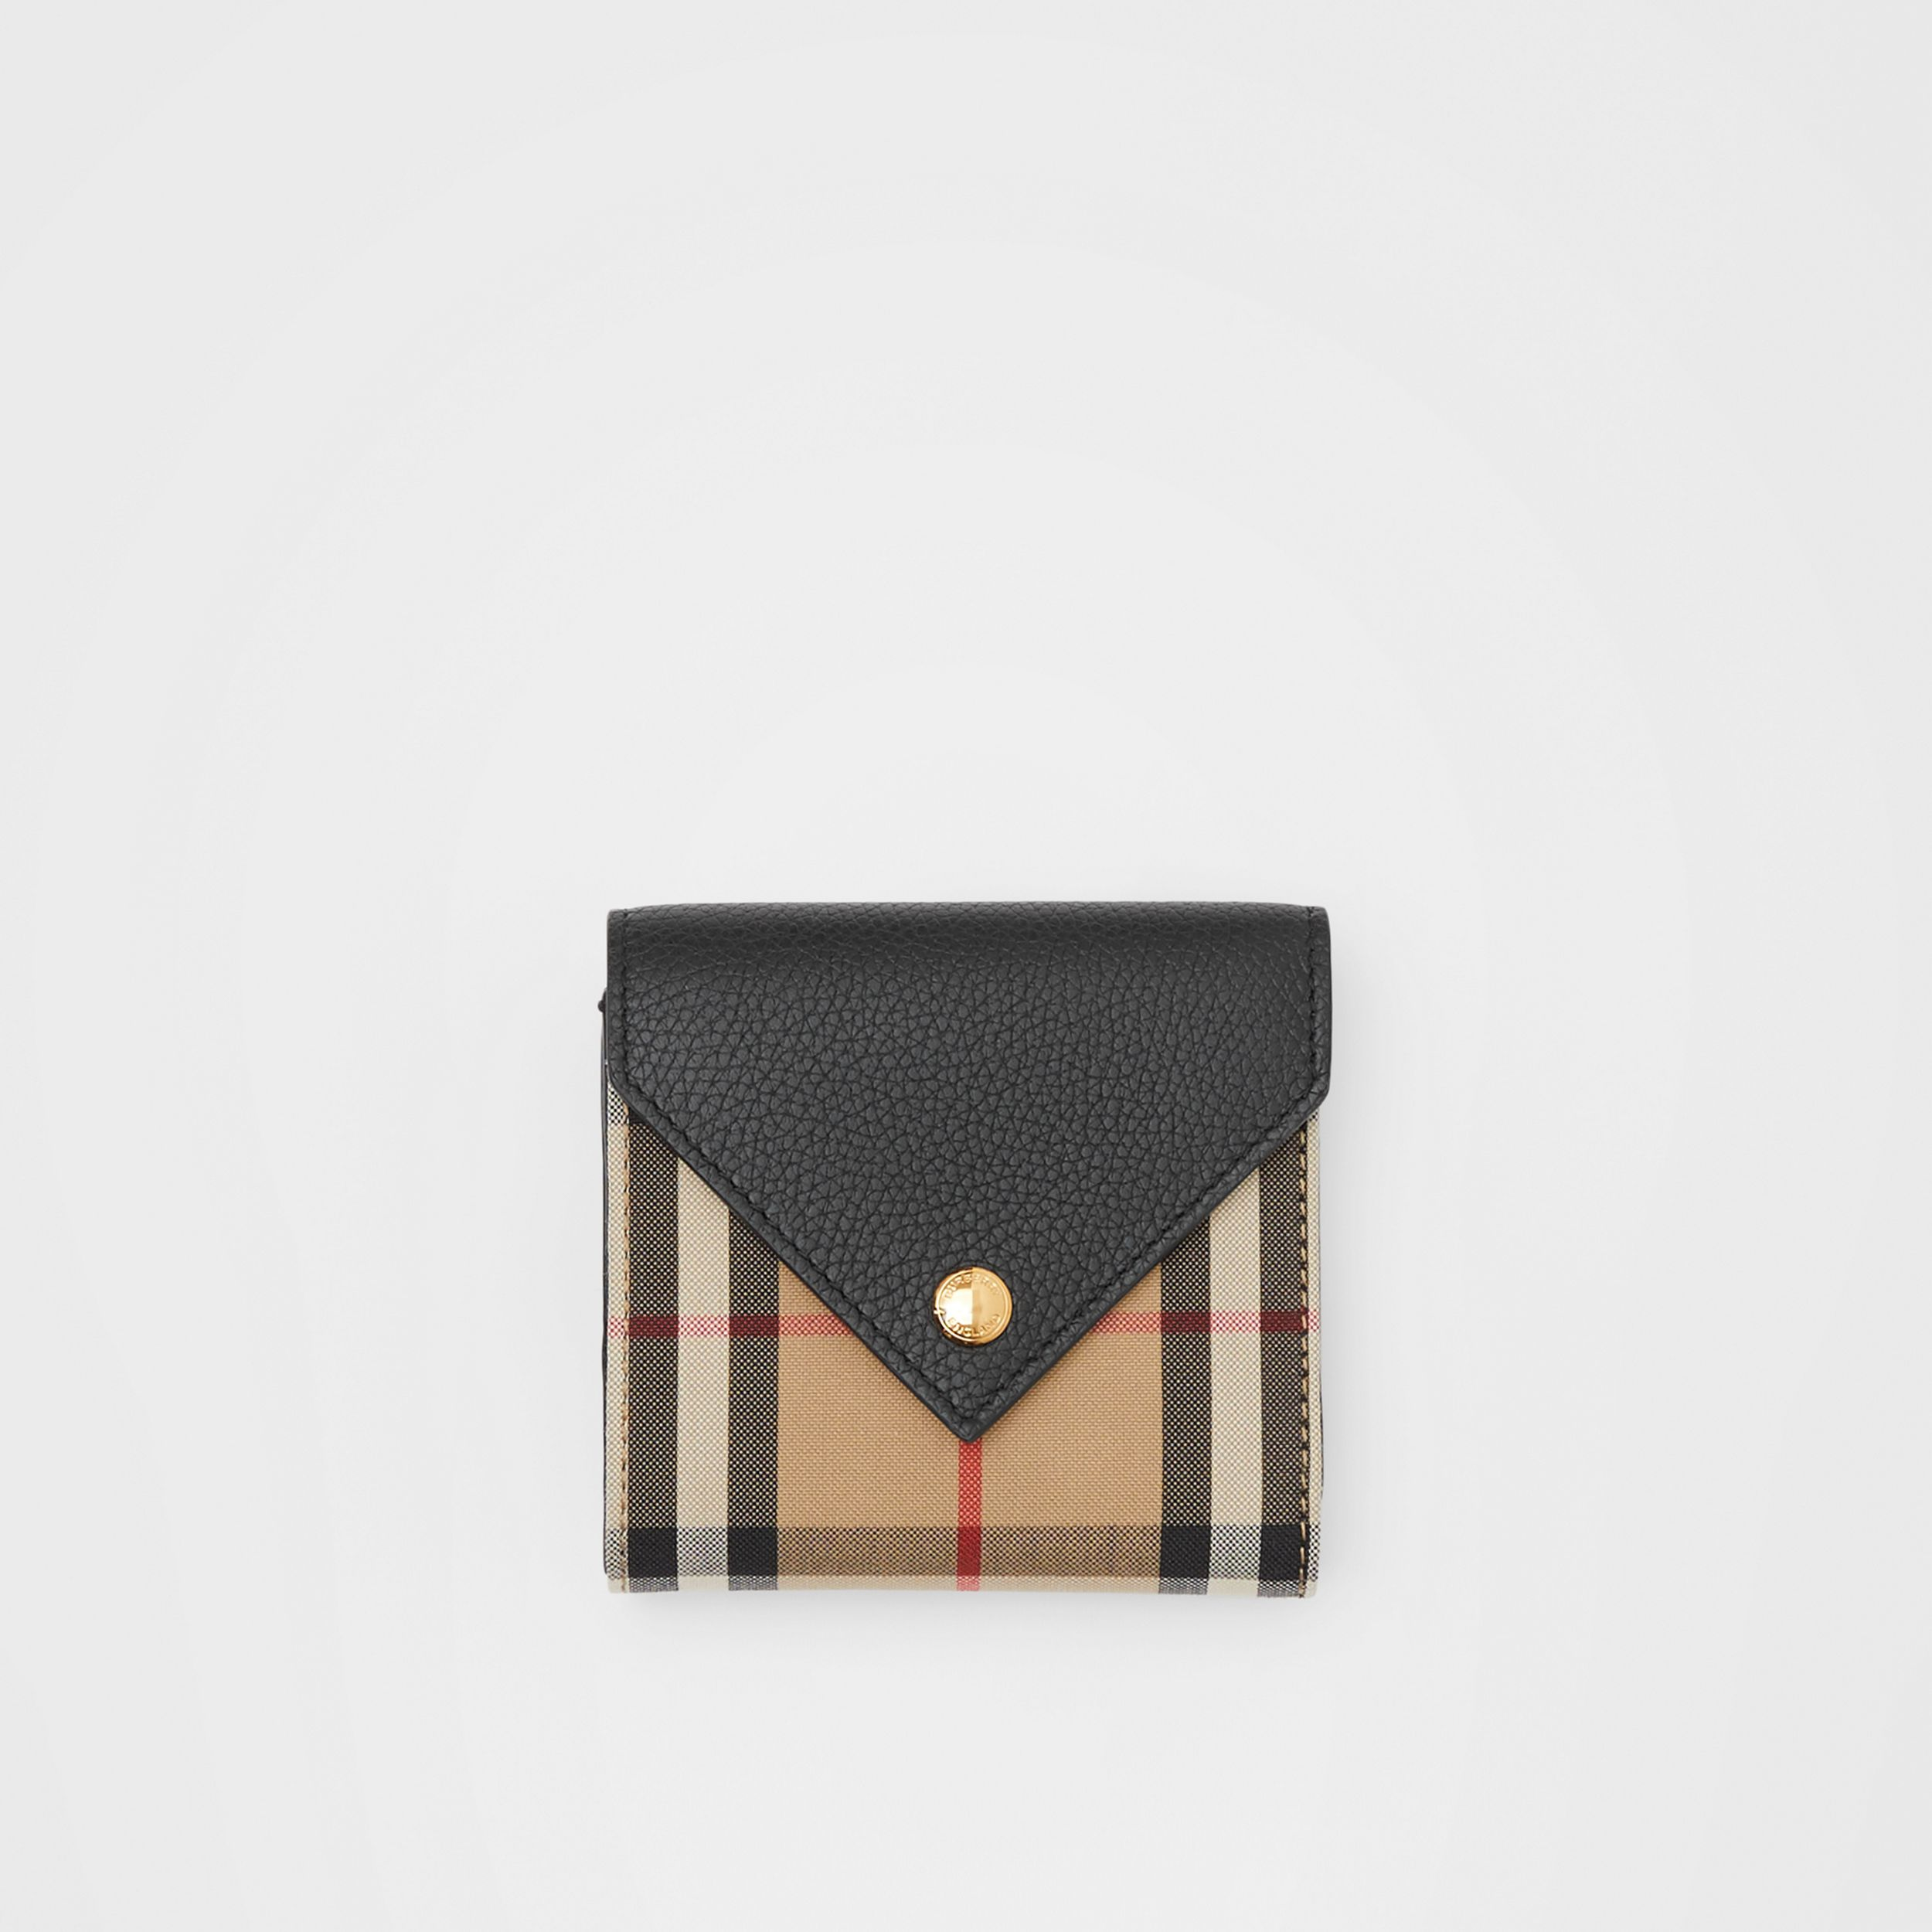 Vintage Check and Grainy Leather Folding Wallet in Black - Women | Burberry - 1